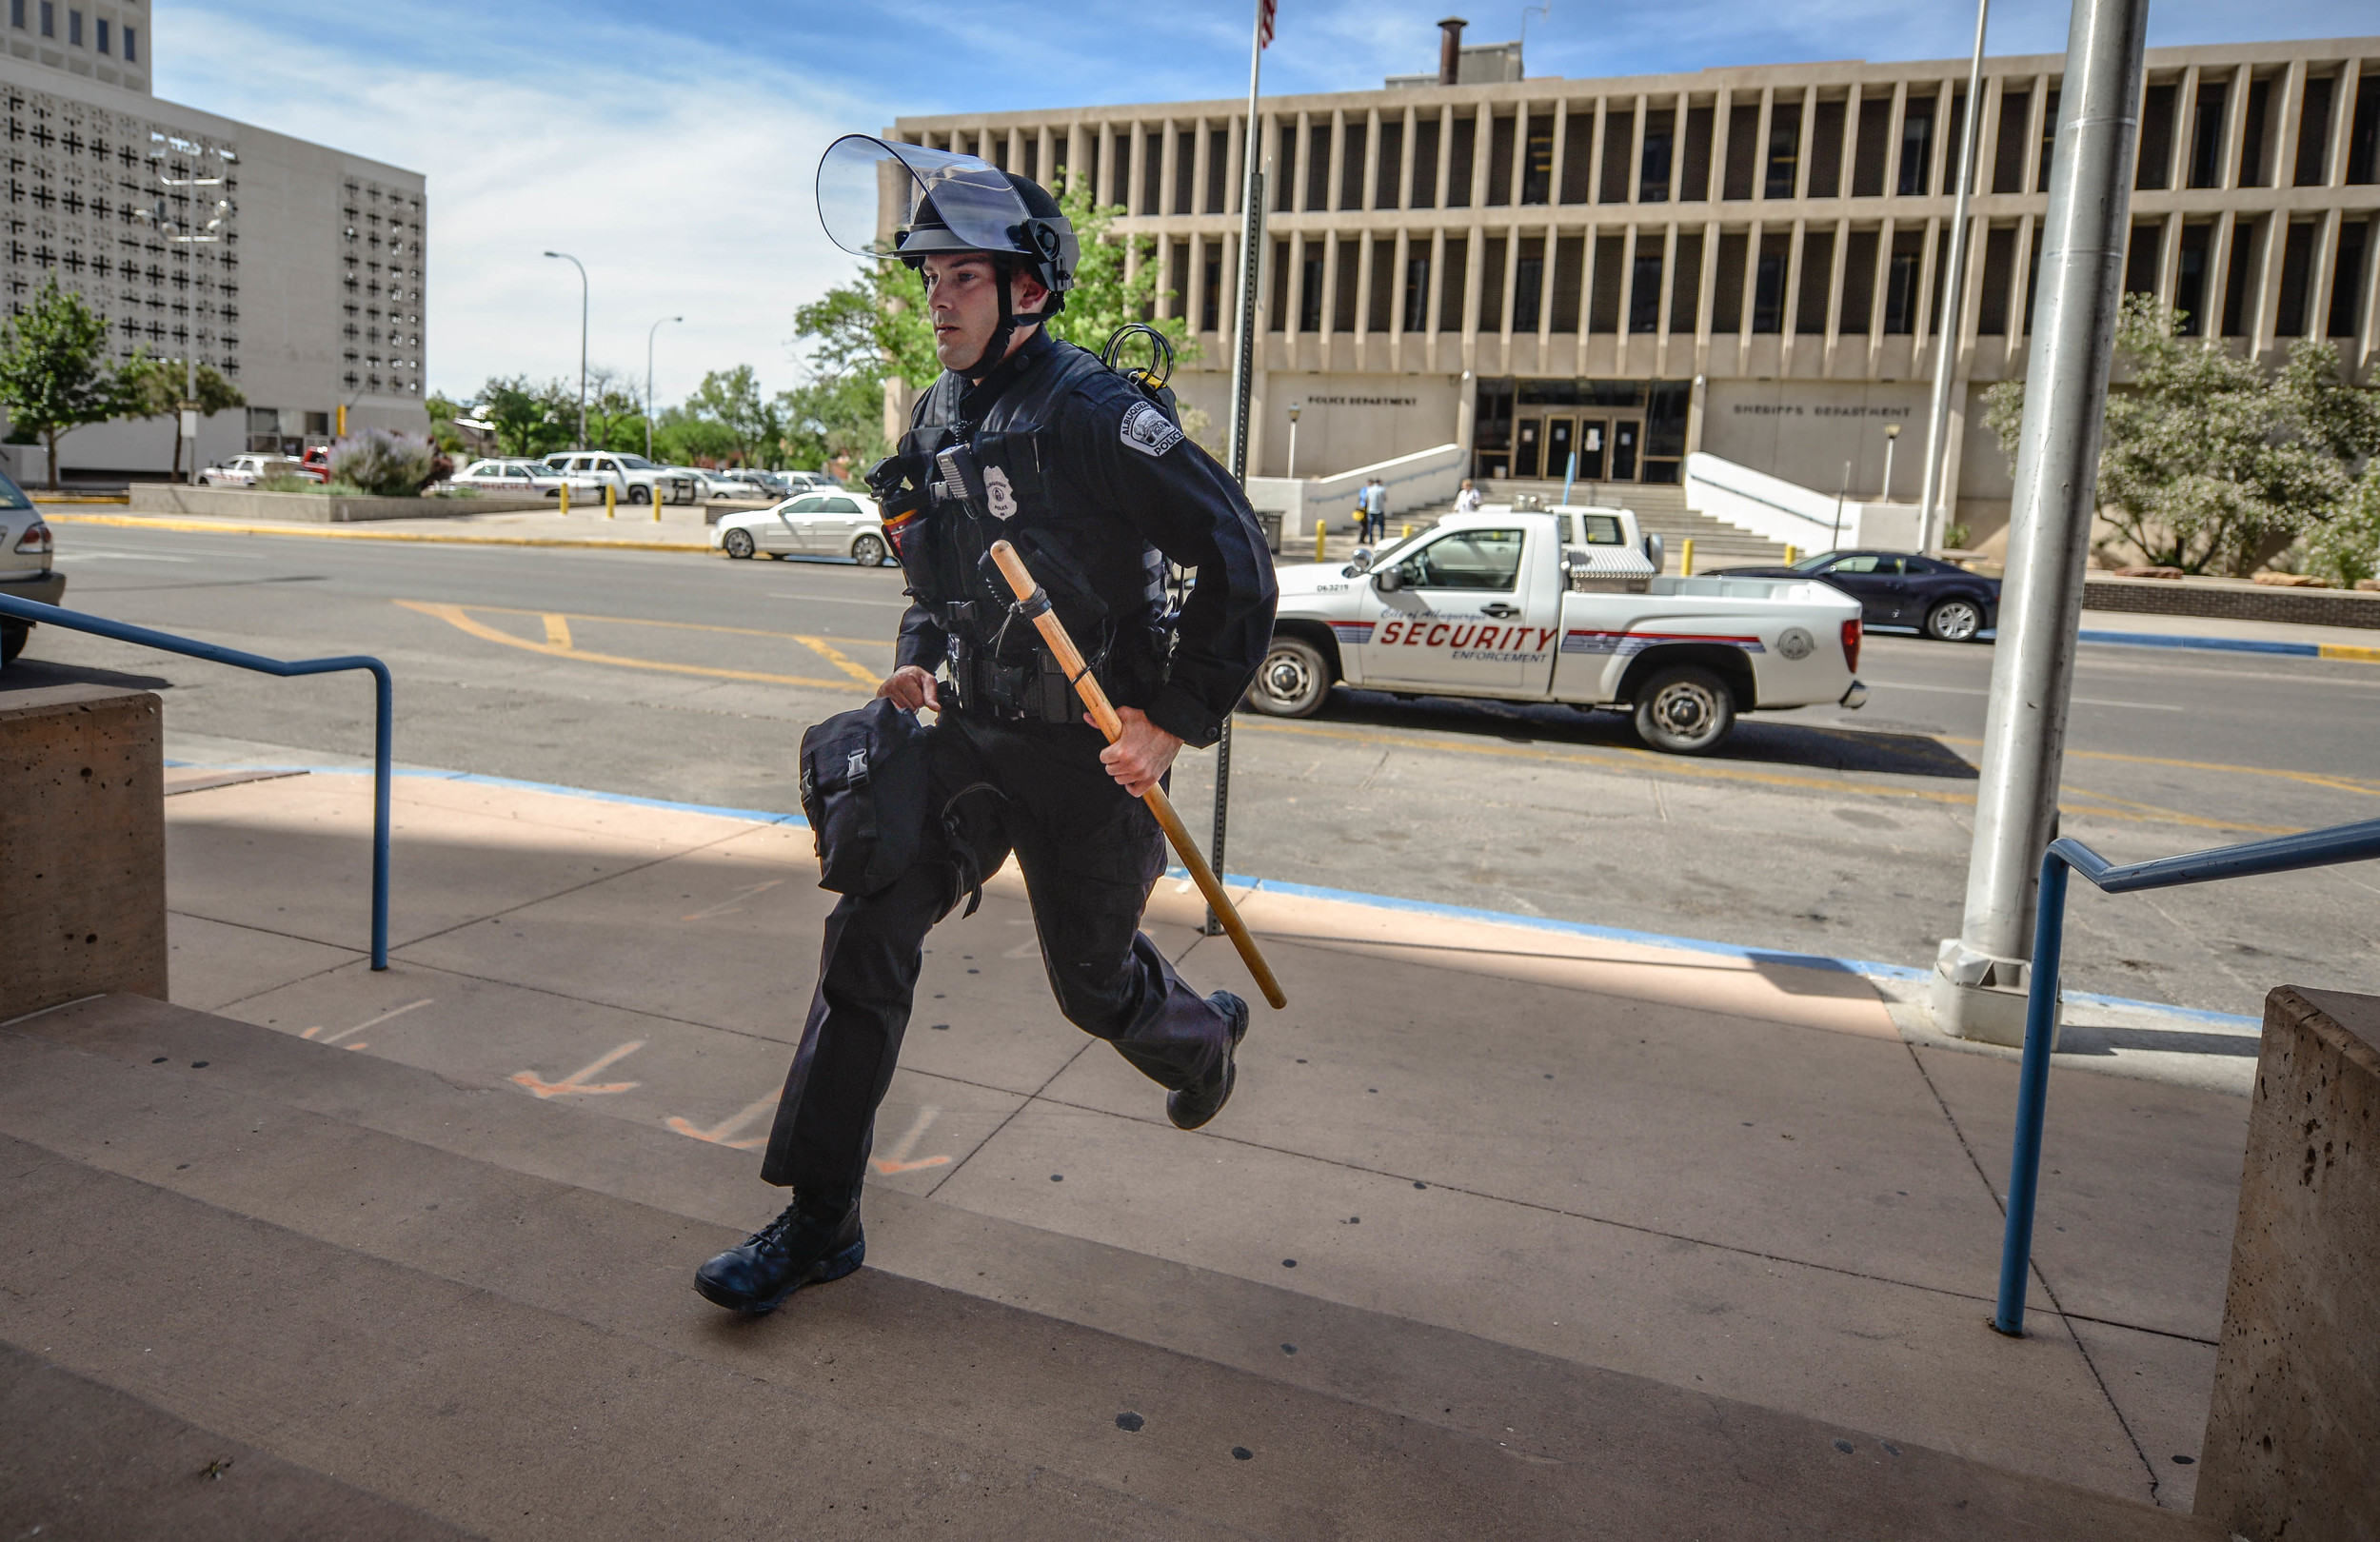 An Albuquerque Police officer runs up to the Mayor's office to arrest protesters.